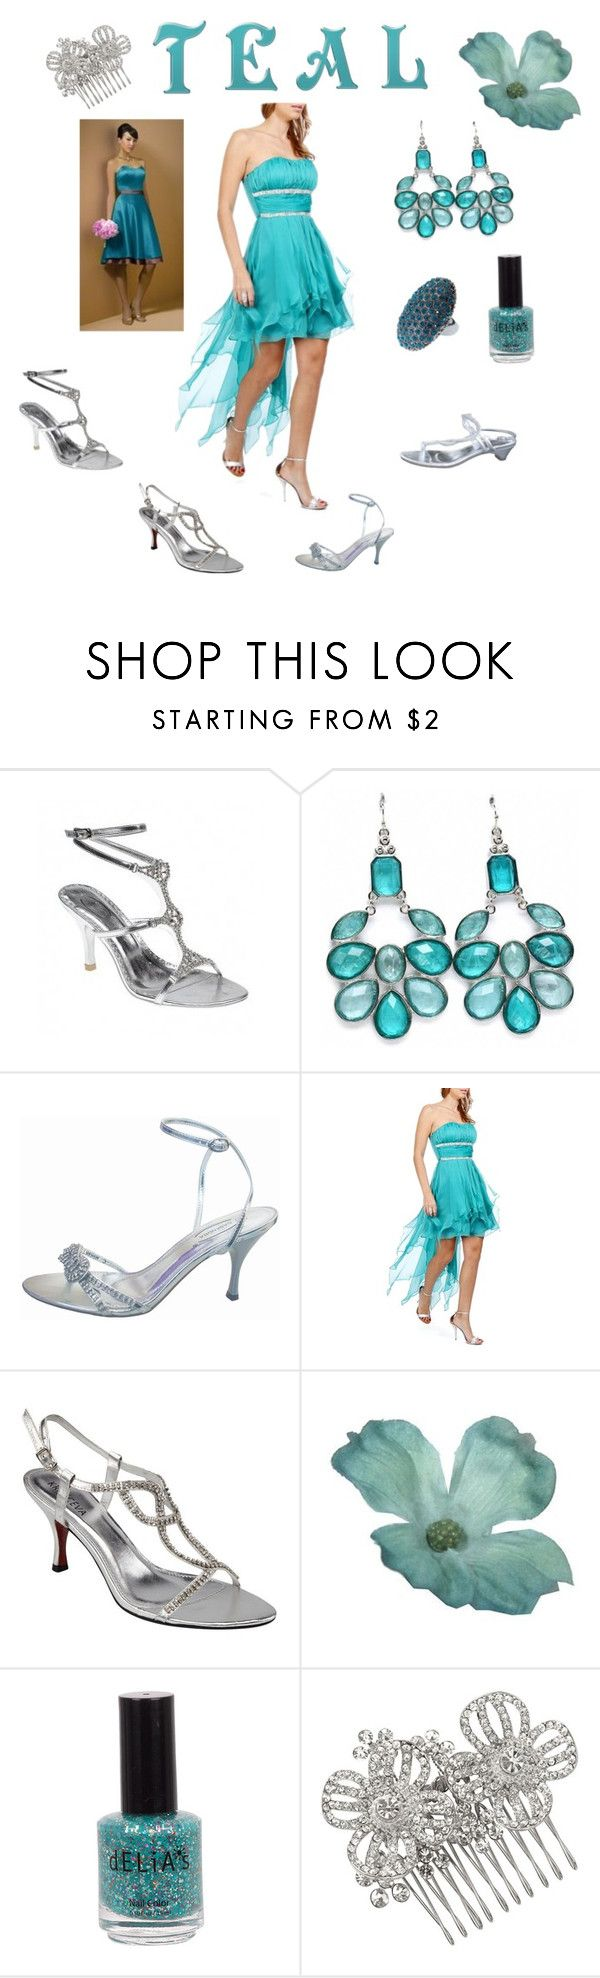 """""""Teal & Silver Wedding Shoes"""" by sole-divas ❤ liked on Polyvore featuring Fantasy Jewelry Box, Matthew Williamson, silver wedding shoes, silver evenings hoes, party shoes, weddings, evening shoes, wedding shoes, wedding and silver evening shoes"""